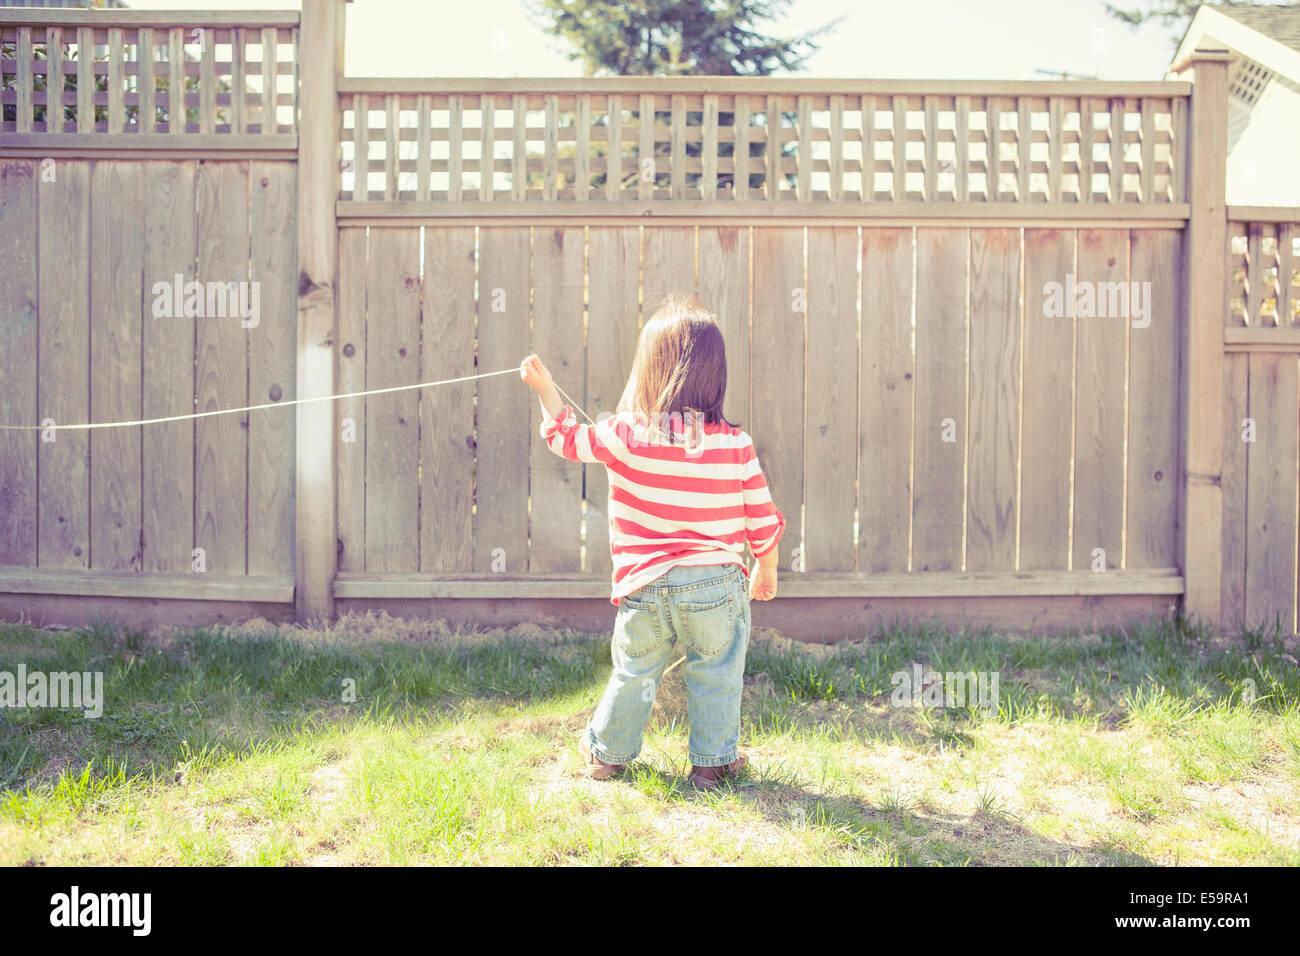 Baby girl playing with string in backyard - Stock Image